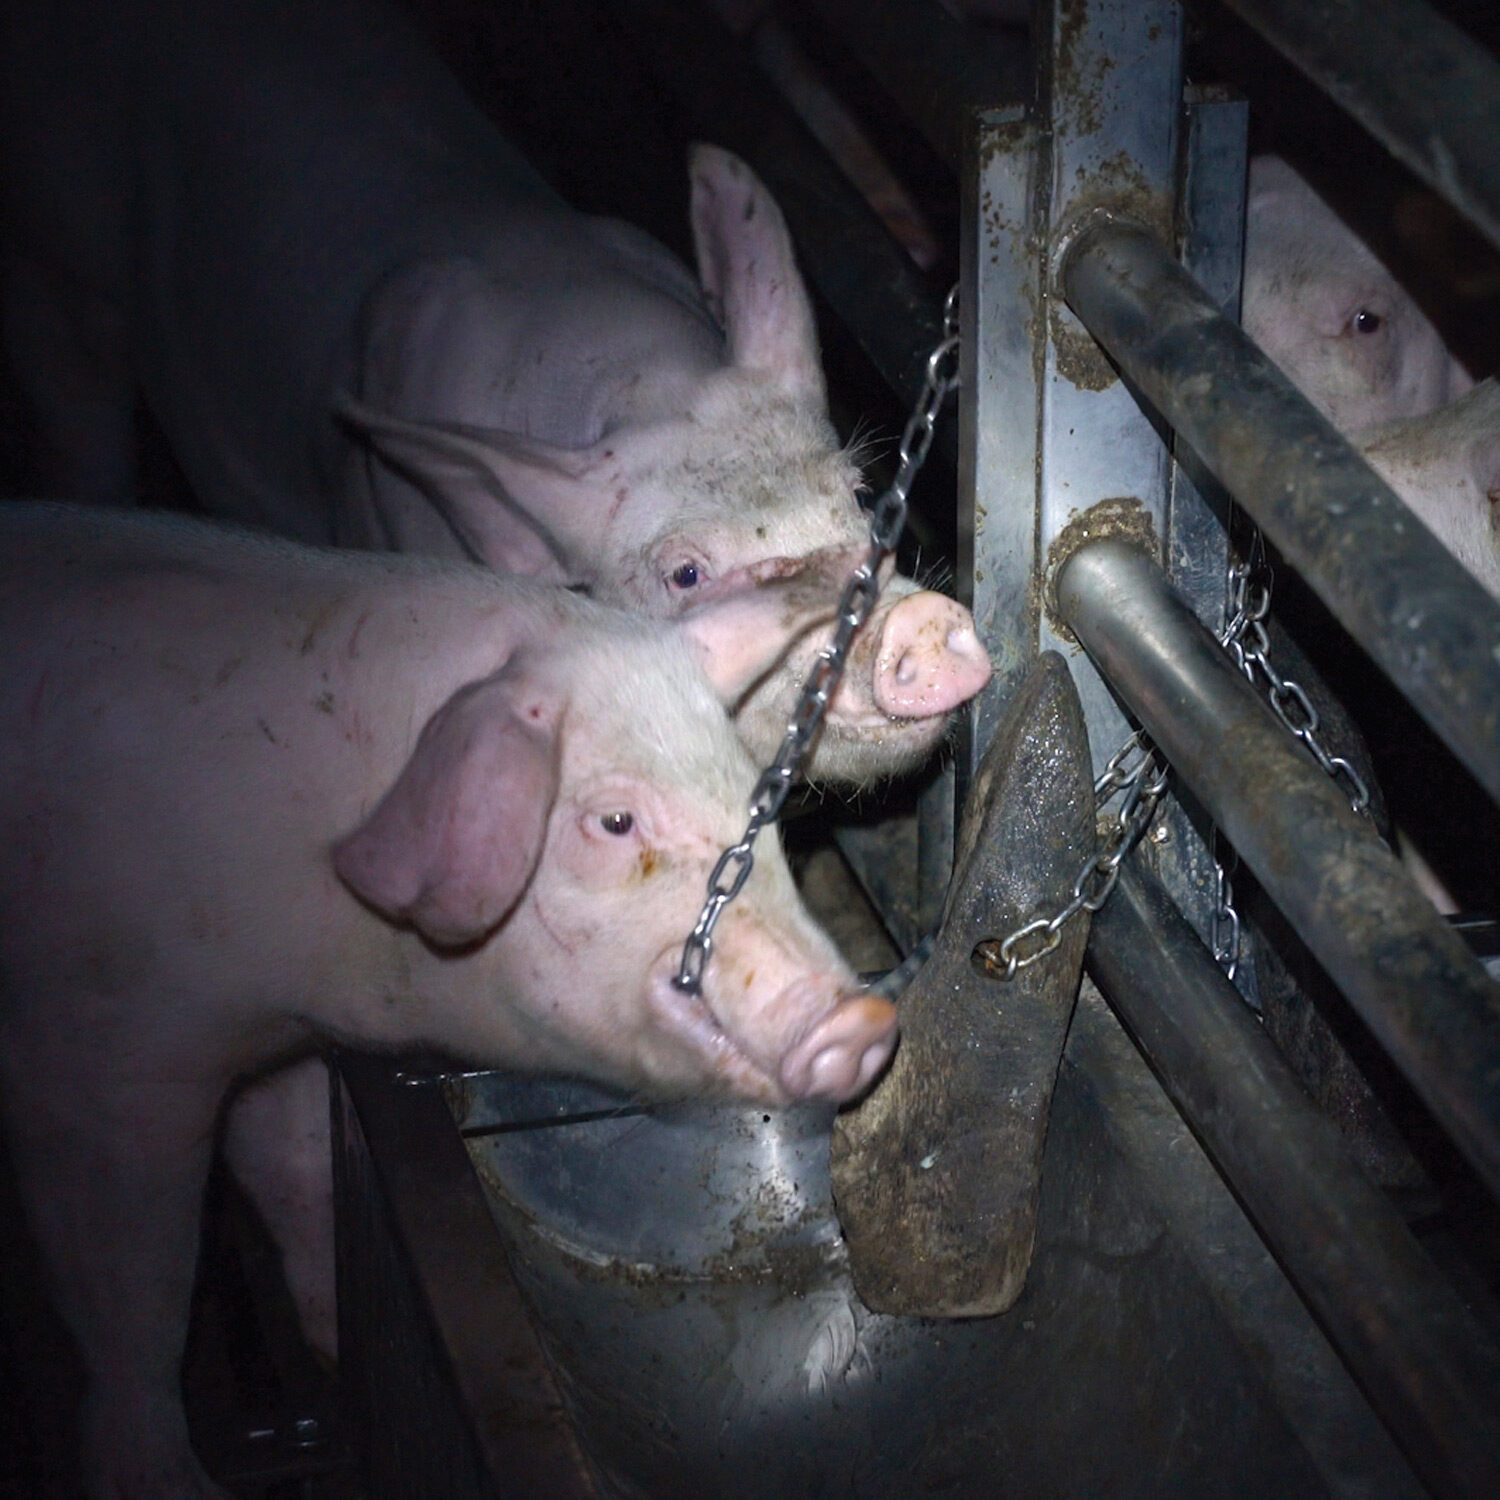 Pigs biting at their cage in a factory farm